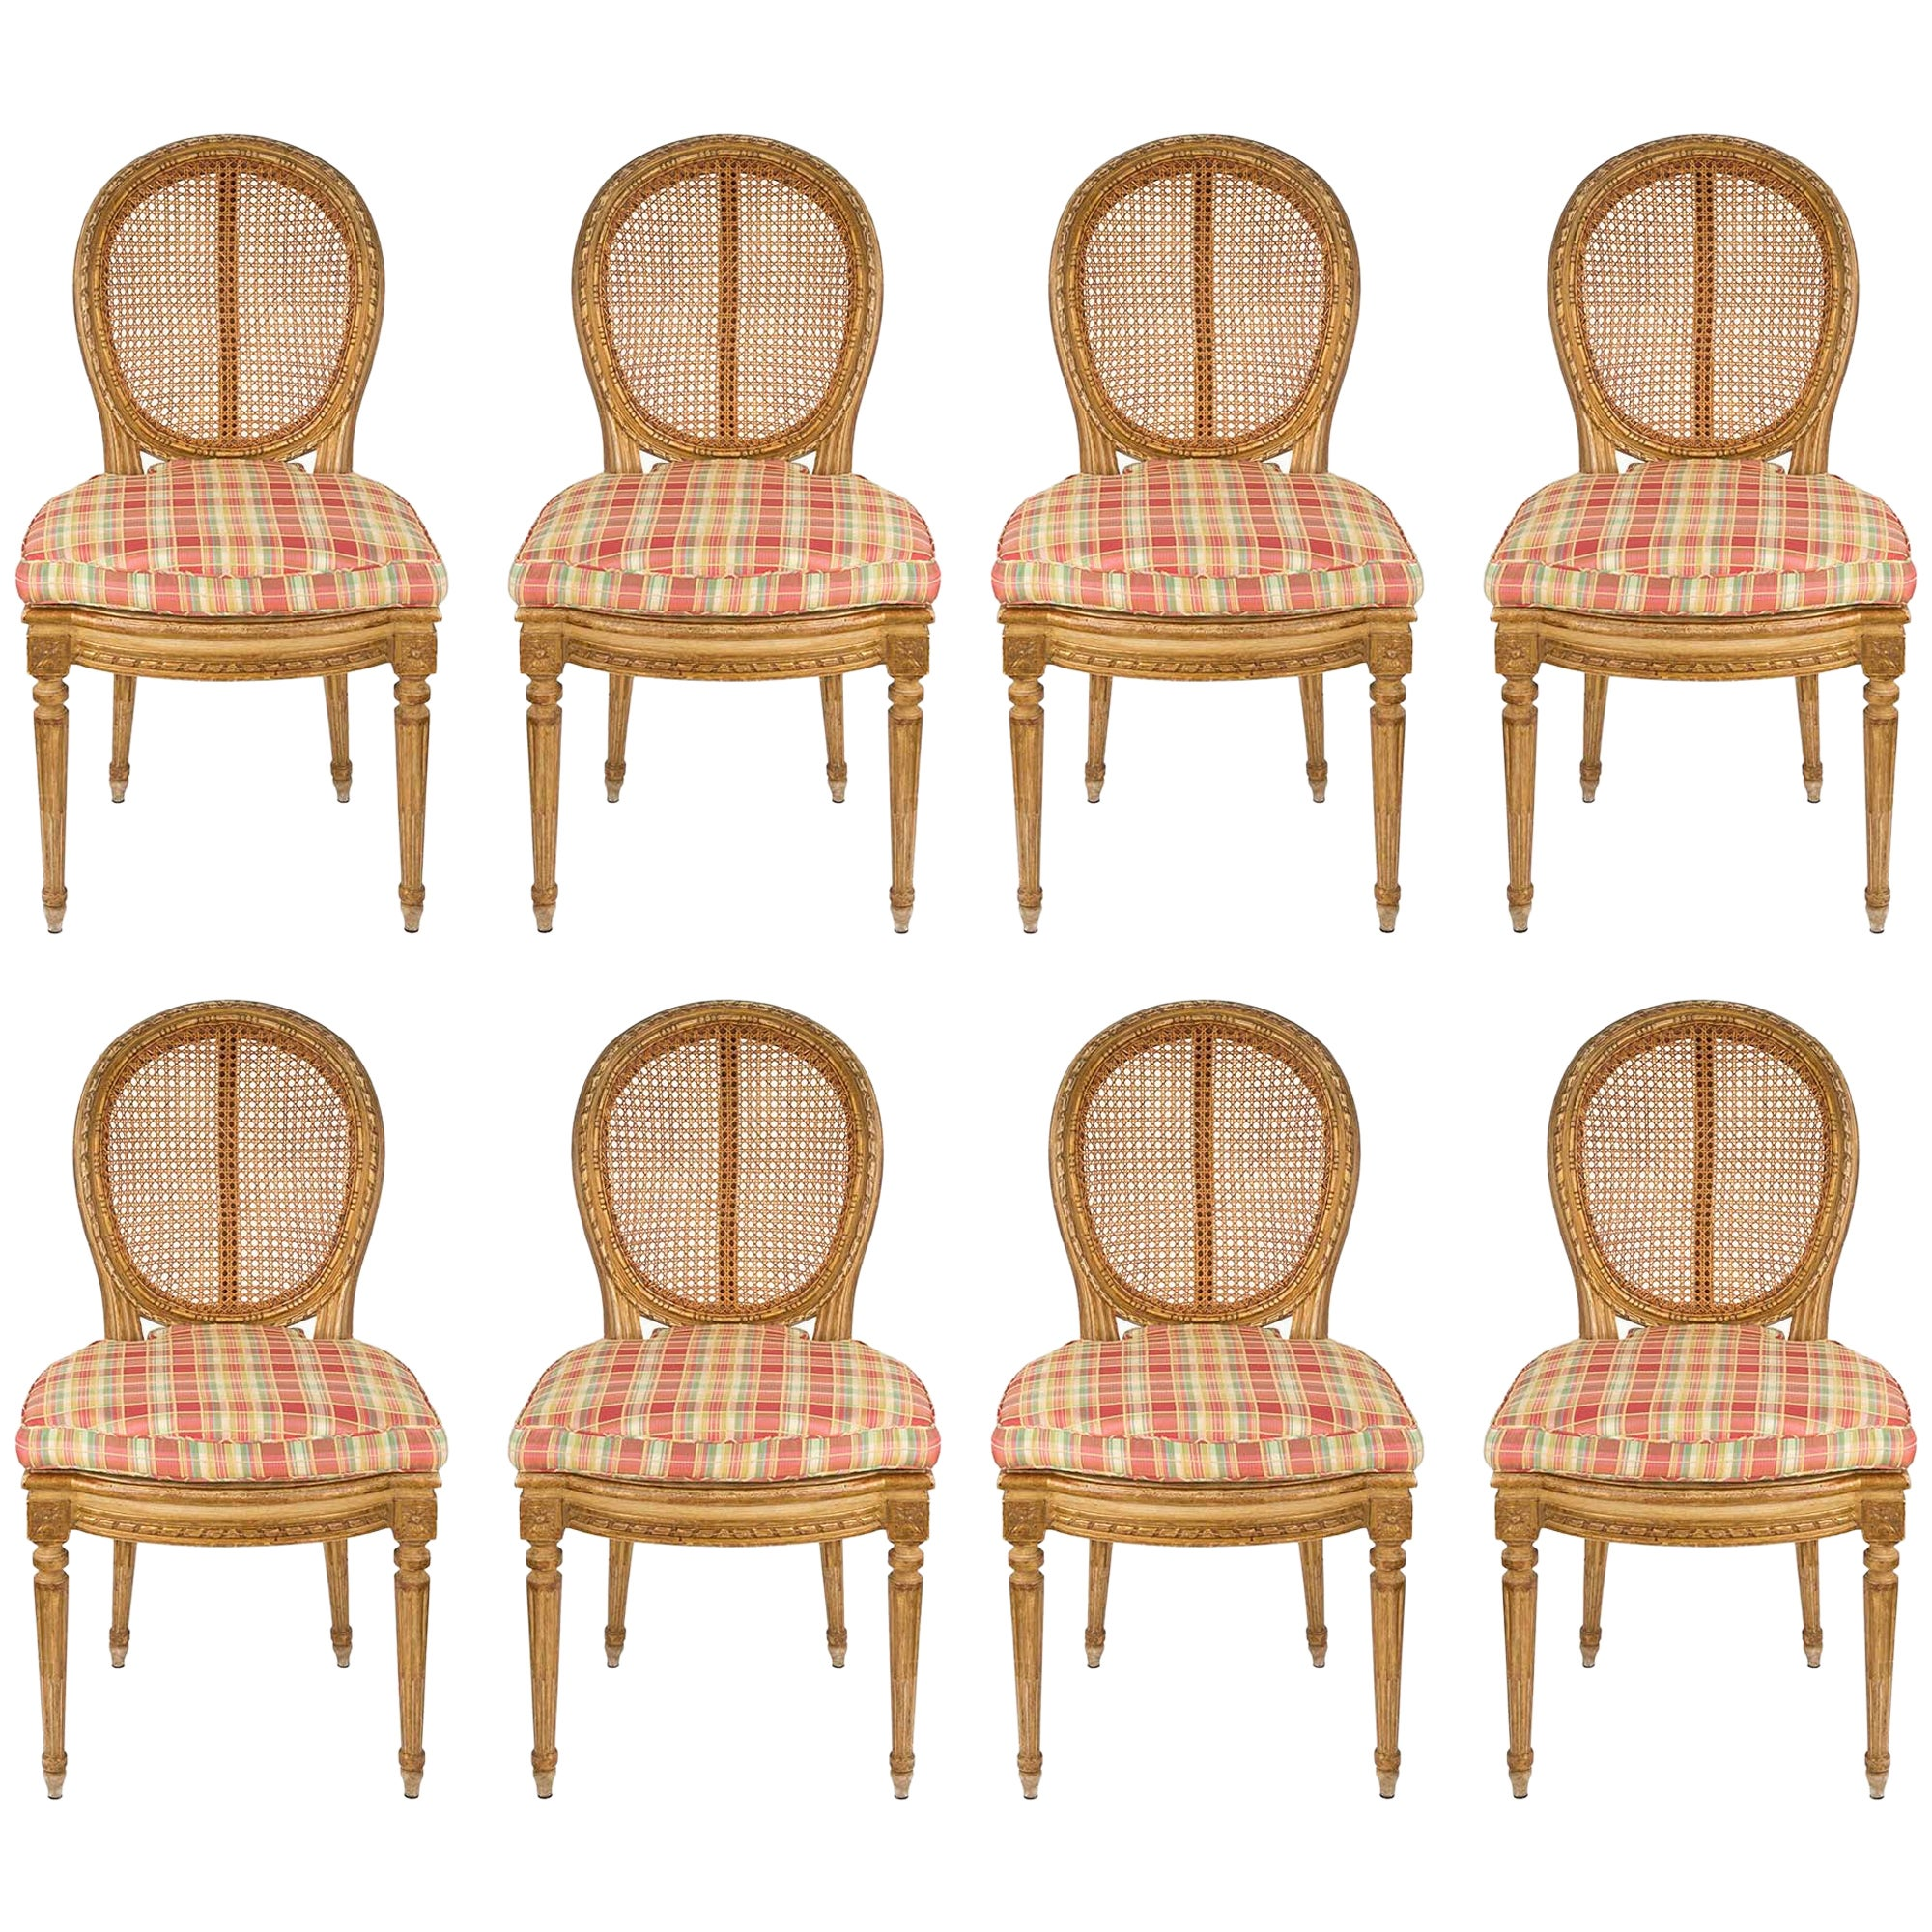 Set of Eight Italian 19th Century Louis XVI Style Giltwood Caned Dining Chairs